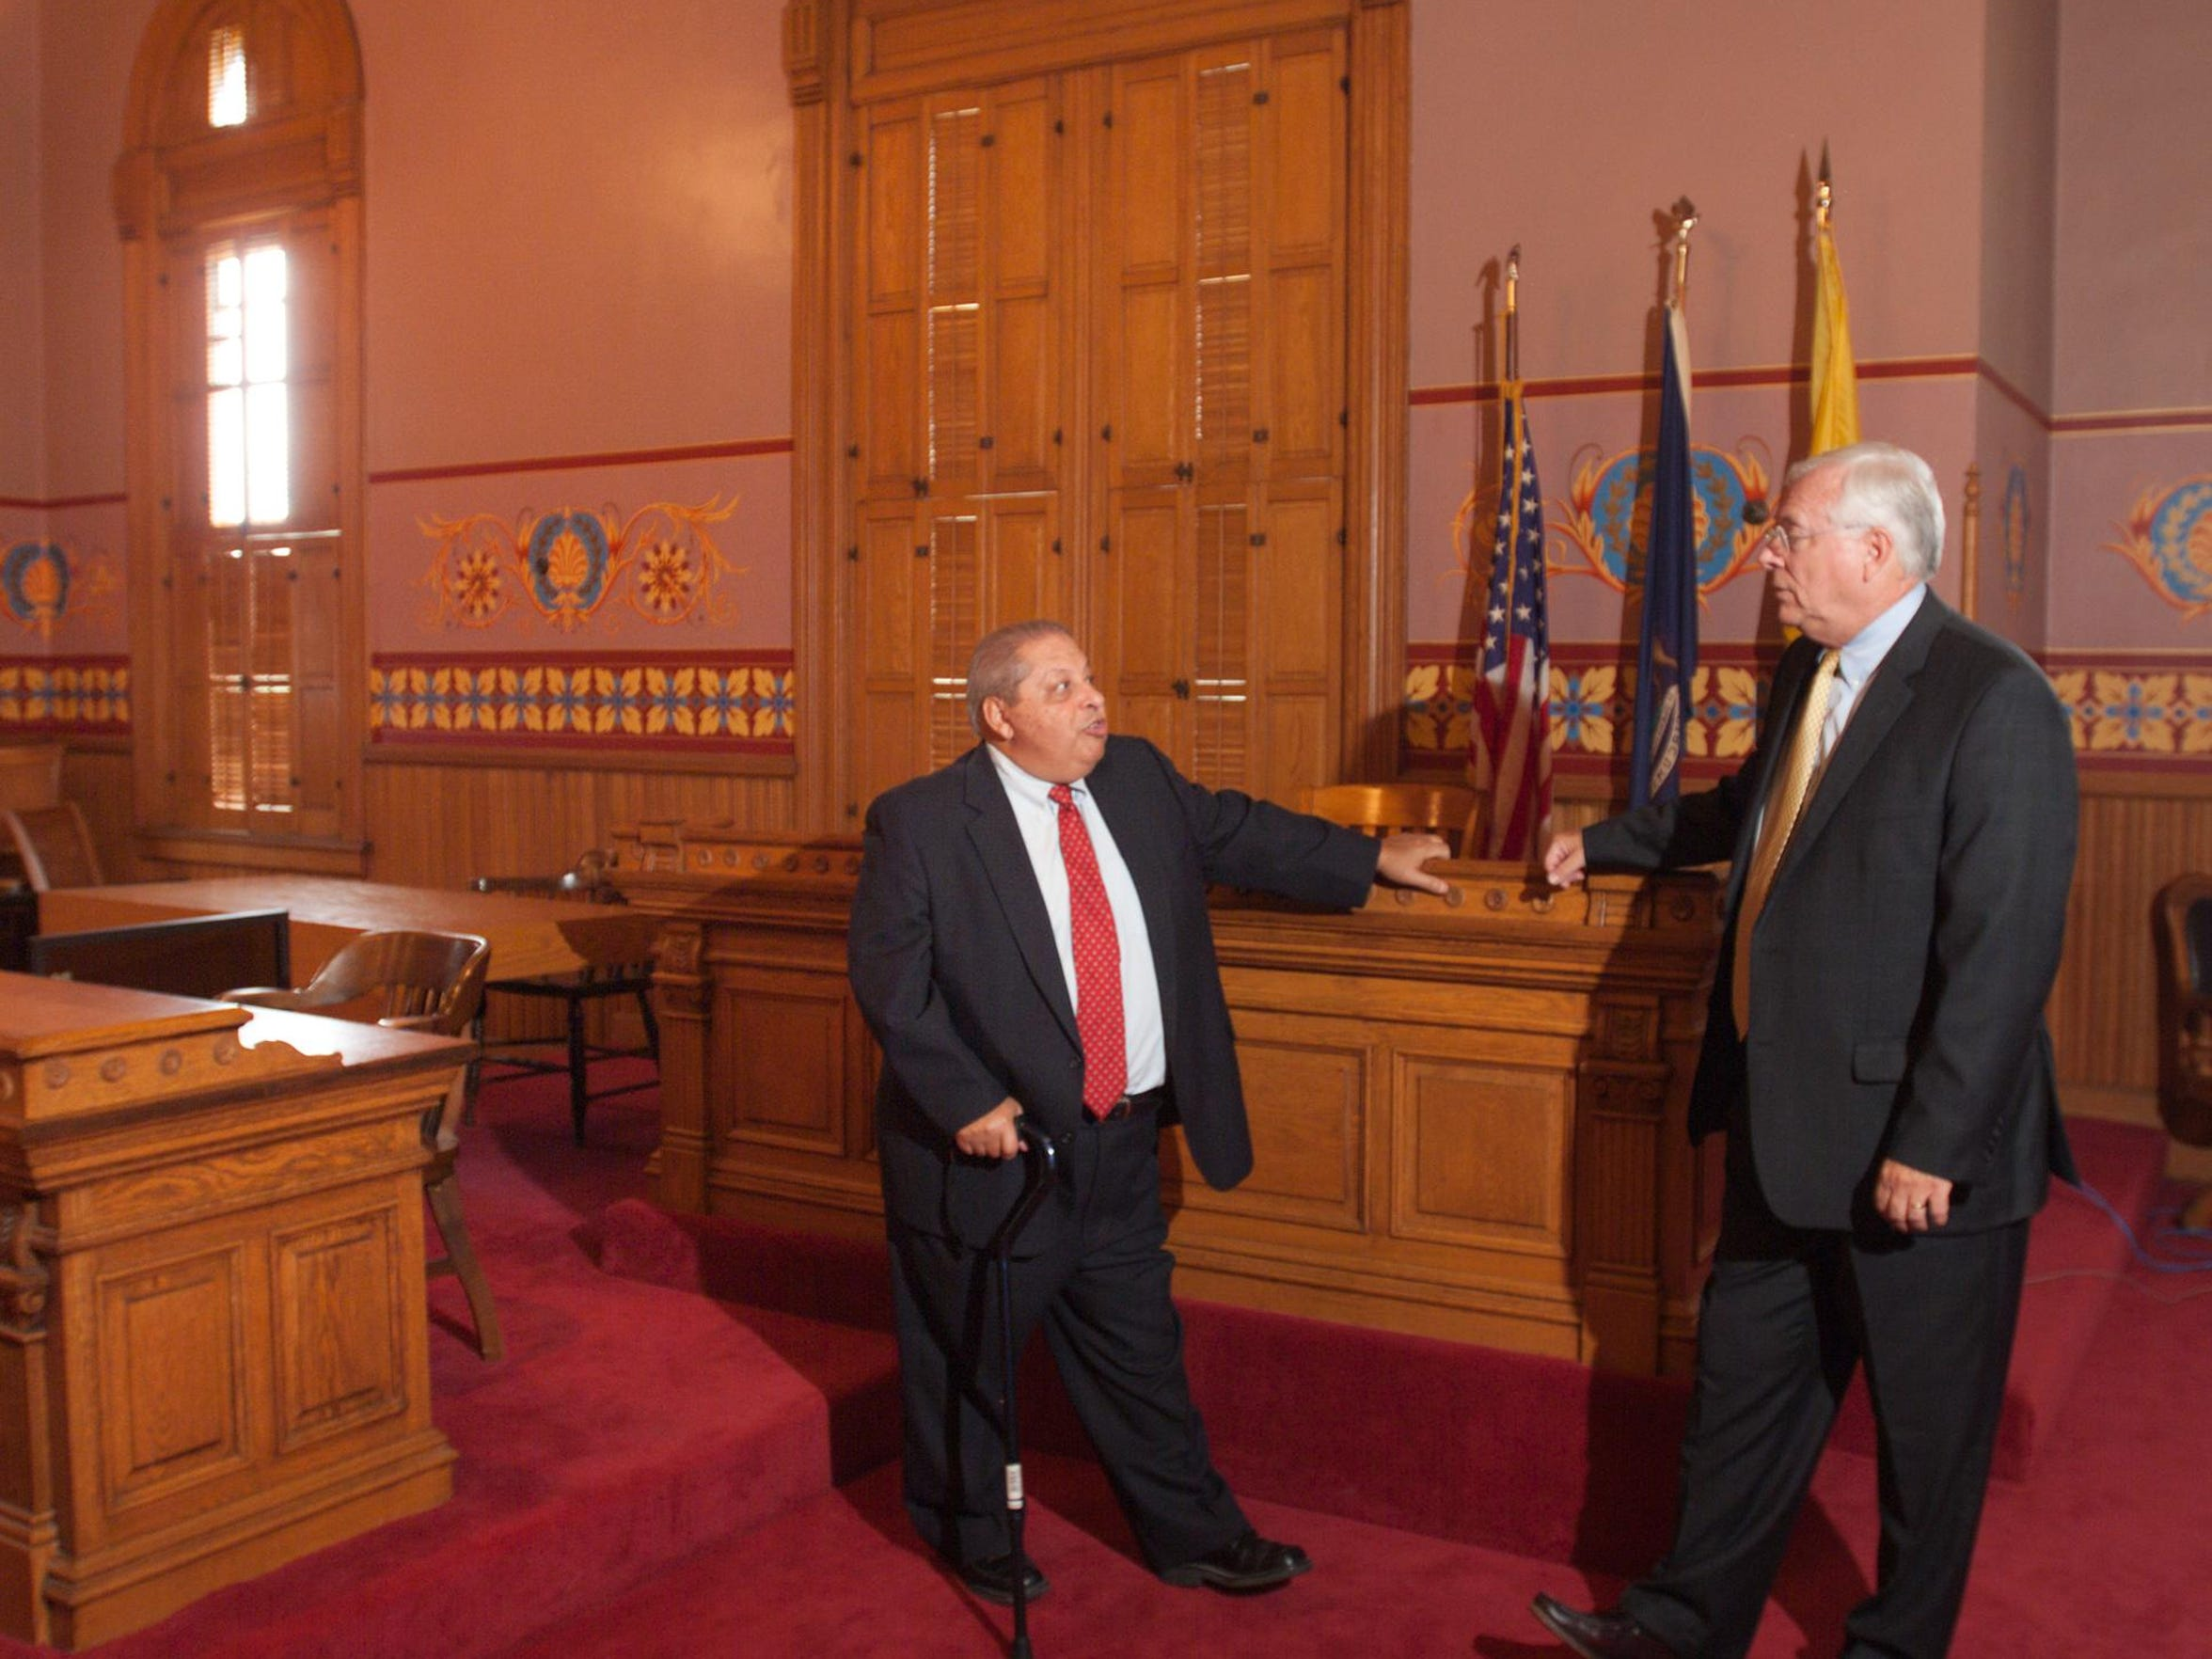 Judge Frank Del Vero, left, and former Livingston County Prosecutor David Morse talk about the logistics of the Shawn Moore case in 1985, held in the historic Livingston County Courthouse. Del Vero was the prosecuting attorney, and Moore was chief assistant prosecuting attorney at the time.